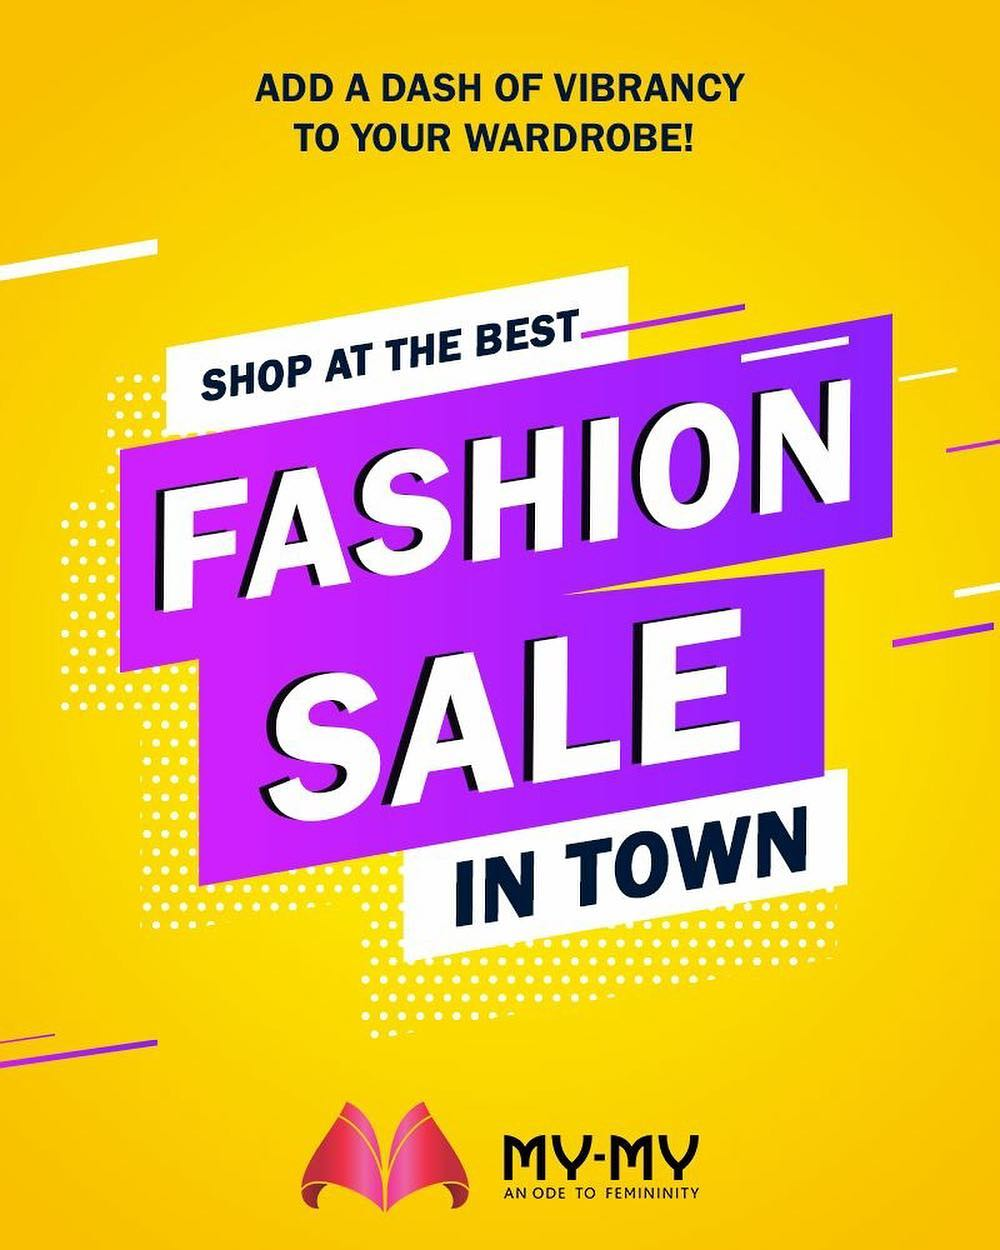 Shop at the best Fashion Sale in town!  #MYMYSale #MyMy #MyMyAhmedabad #Fashion #Ahmedabad #FemaleFashion